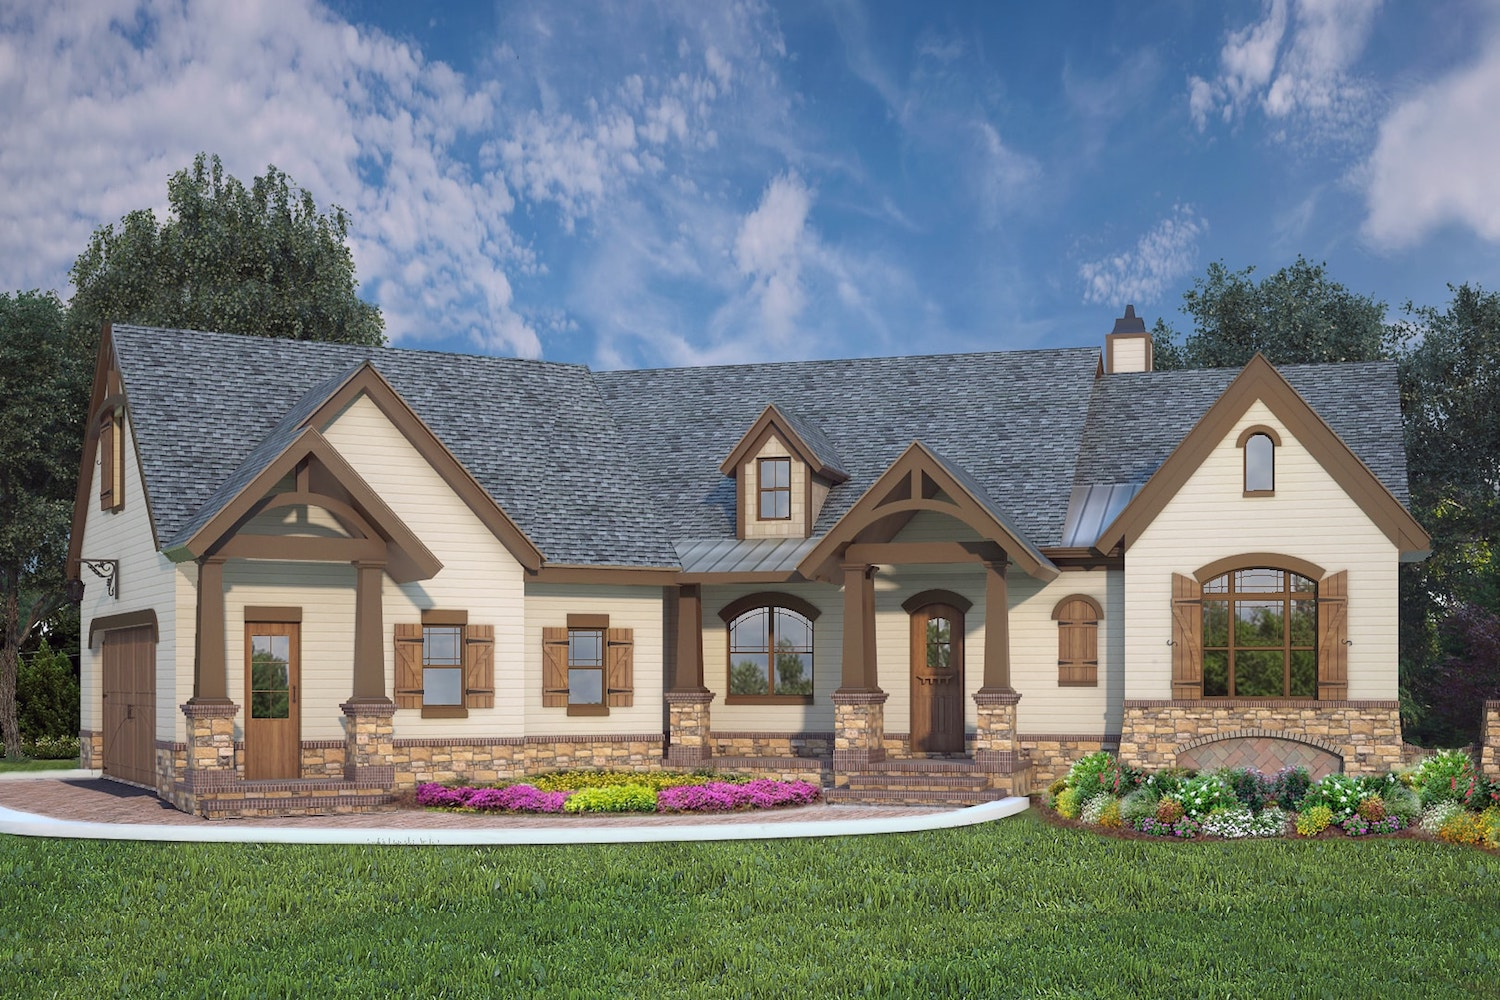 Ranch House Plan - 3 Bedrms, 2.5 Baths - 2764 Sq Ft - #106-1319 on ranch home floor plans with walkout basement, floor plans open kitchen with cathedral ceiling, ranch house with cathedral ceiling, ranch house vaulted ceiling,